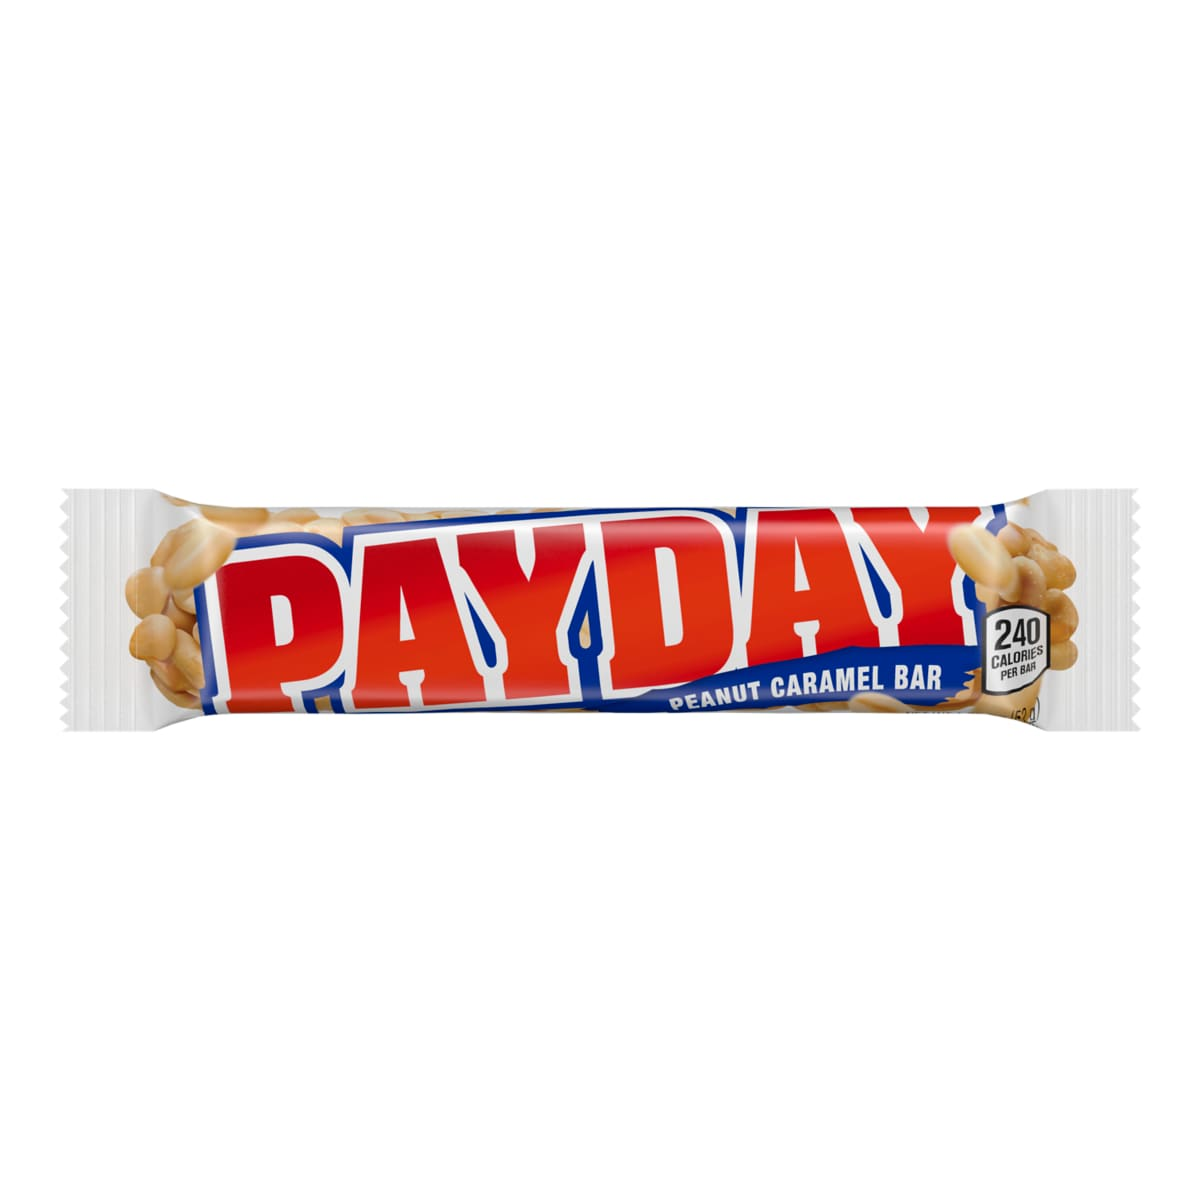 PAYDAY Standard Bar | Product & Nutrition